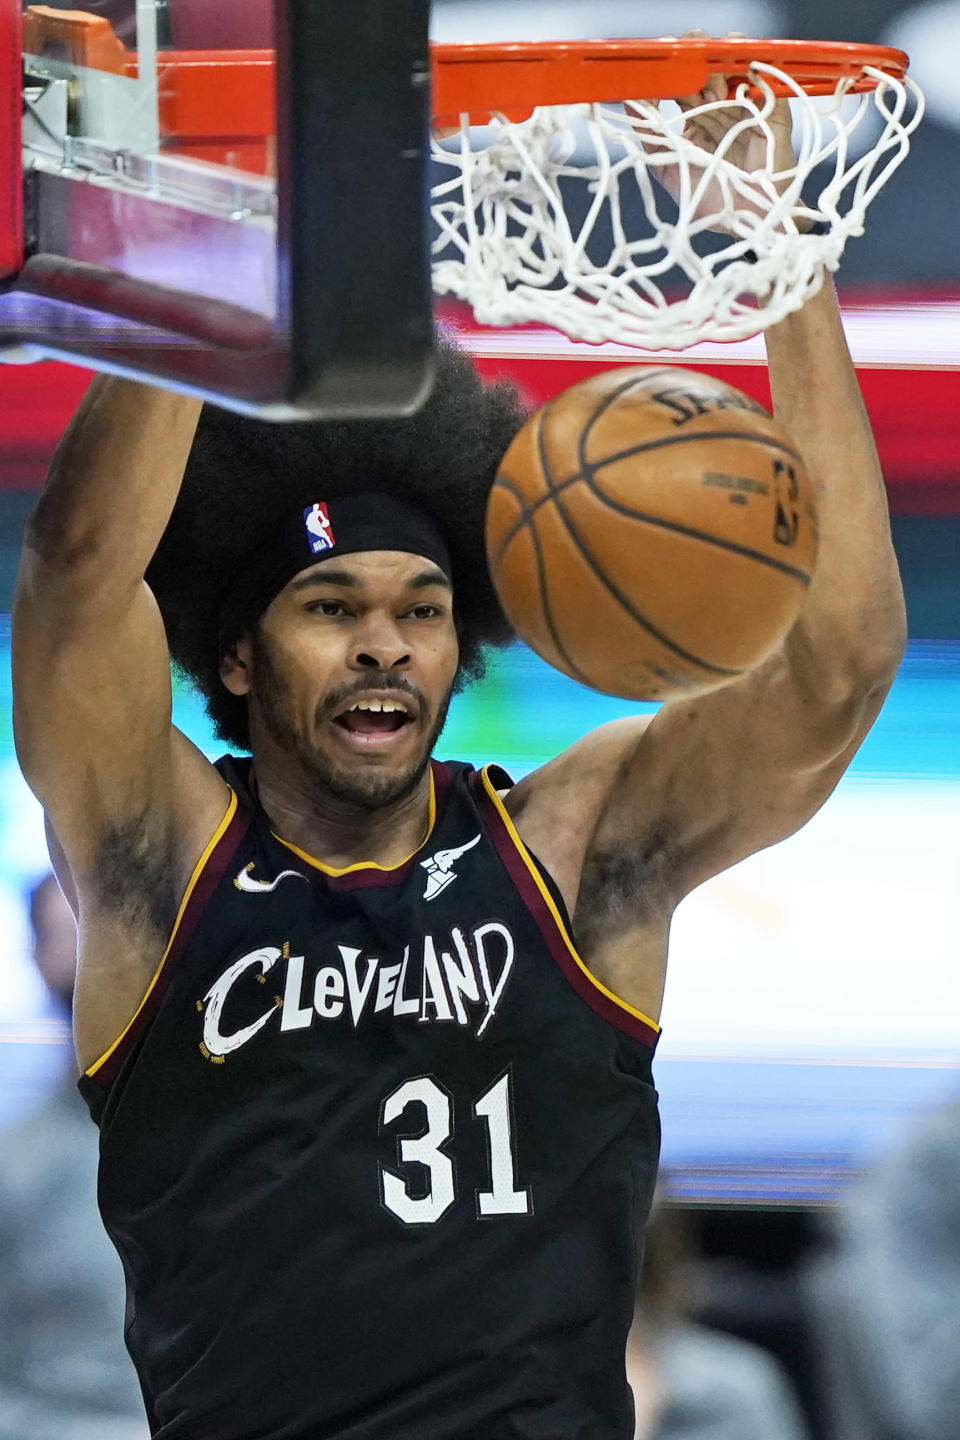 Cleveland Cavaliers' Jarrett Allen dunks against the Chicago Bulls during the second half of an NBA basketball game, Wednesday, April 21, 2021, in Cleveland. (AP Photo/Tony Dejak)